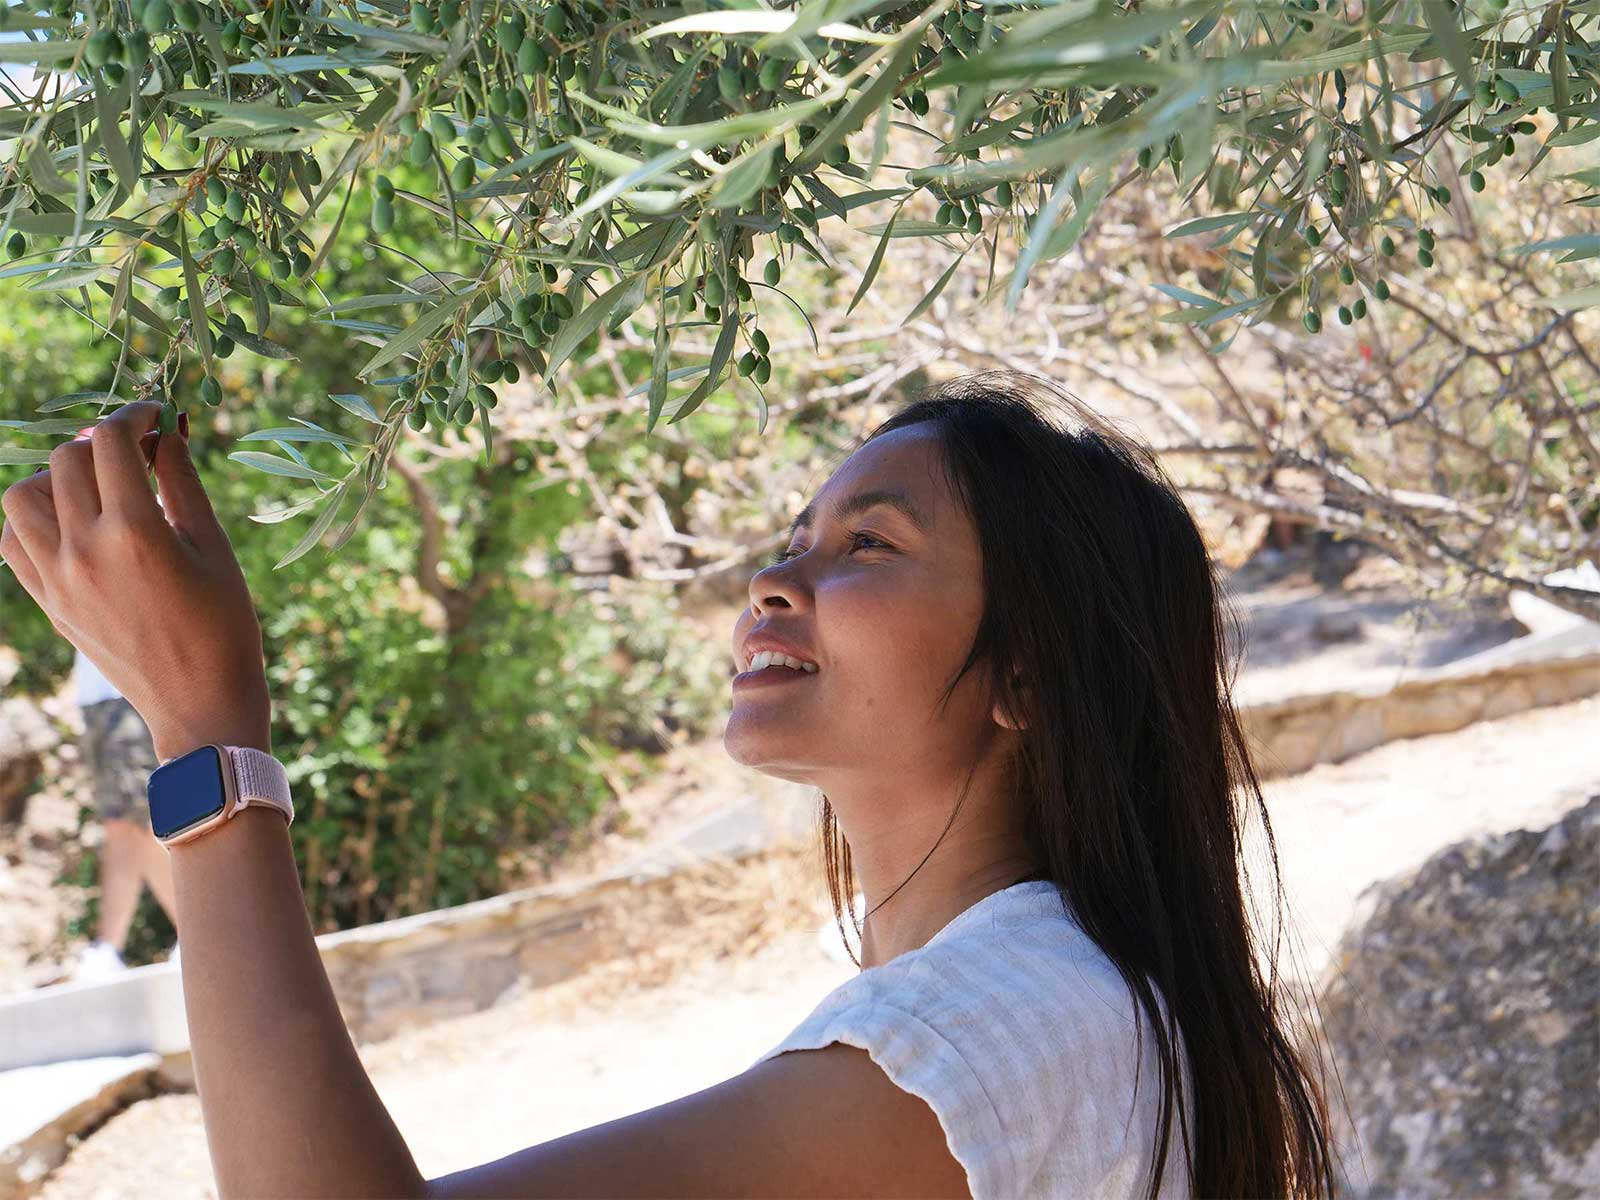 Jantanee Thai Girl | Acropolis Athens Greece | Olives | Travel and Tourism